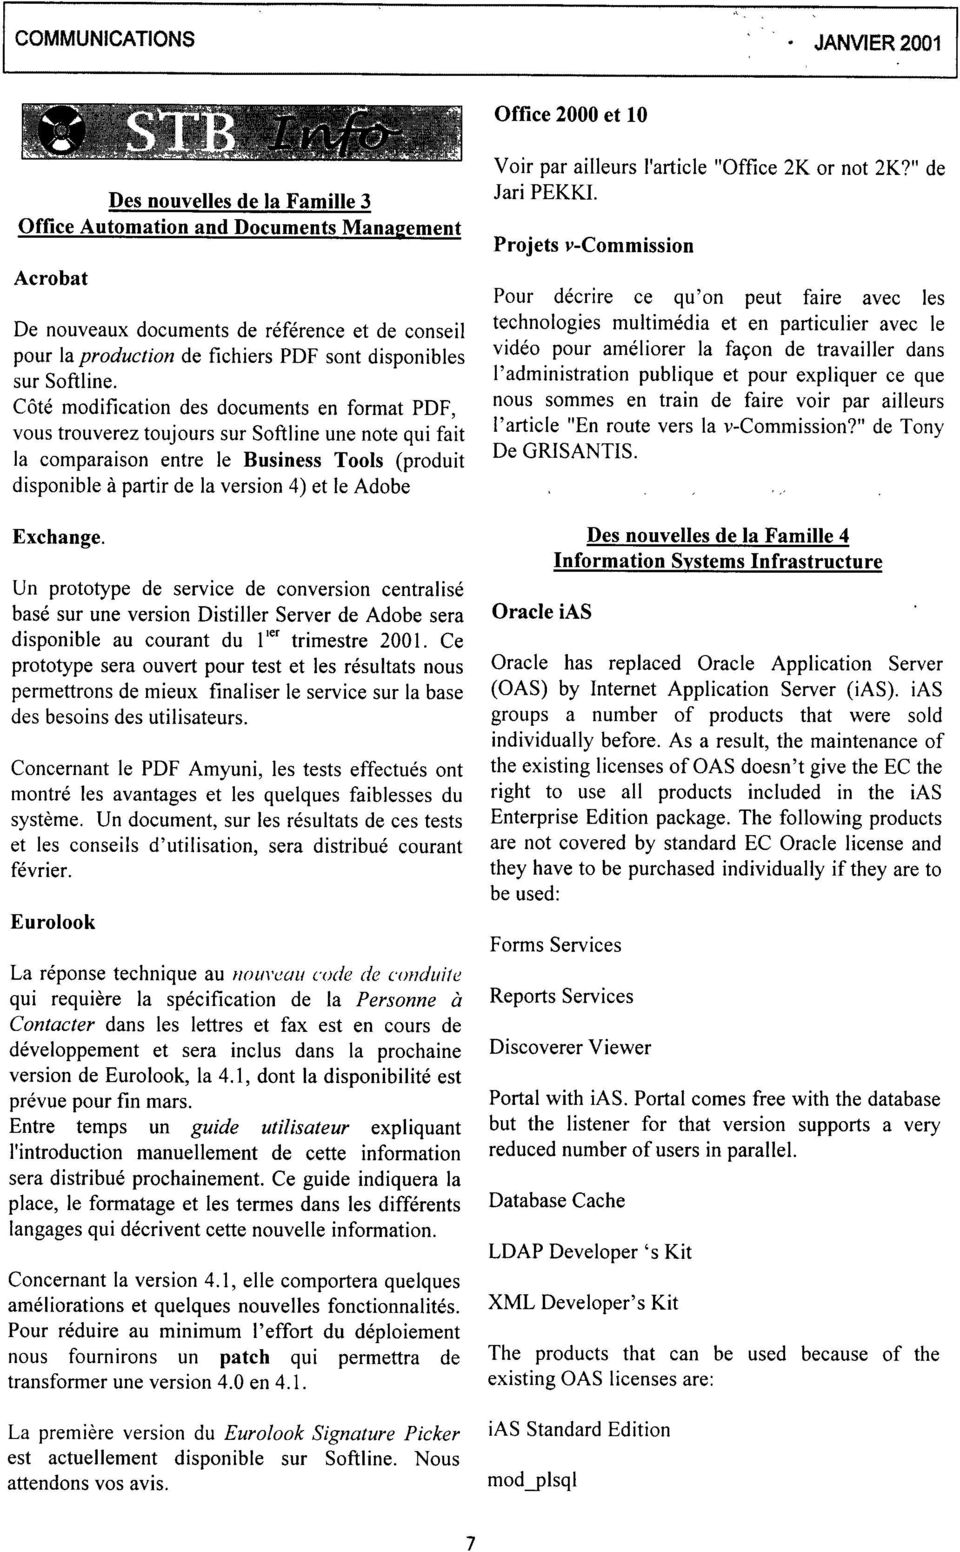 C6t6 modification des documents en format PDF, vous trouverez toujours sur Softline une note qui fait la comparaison entre le Business Tools (produit disponible d partir de la version 4) et le Adobe